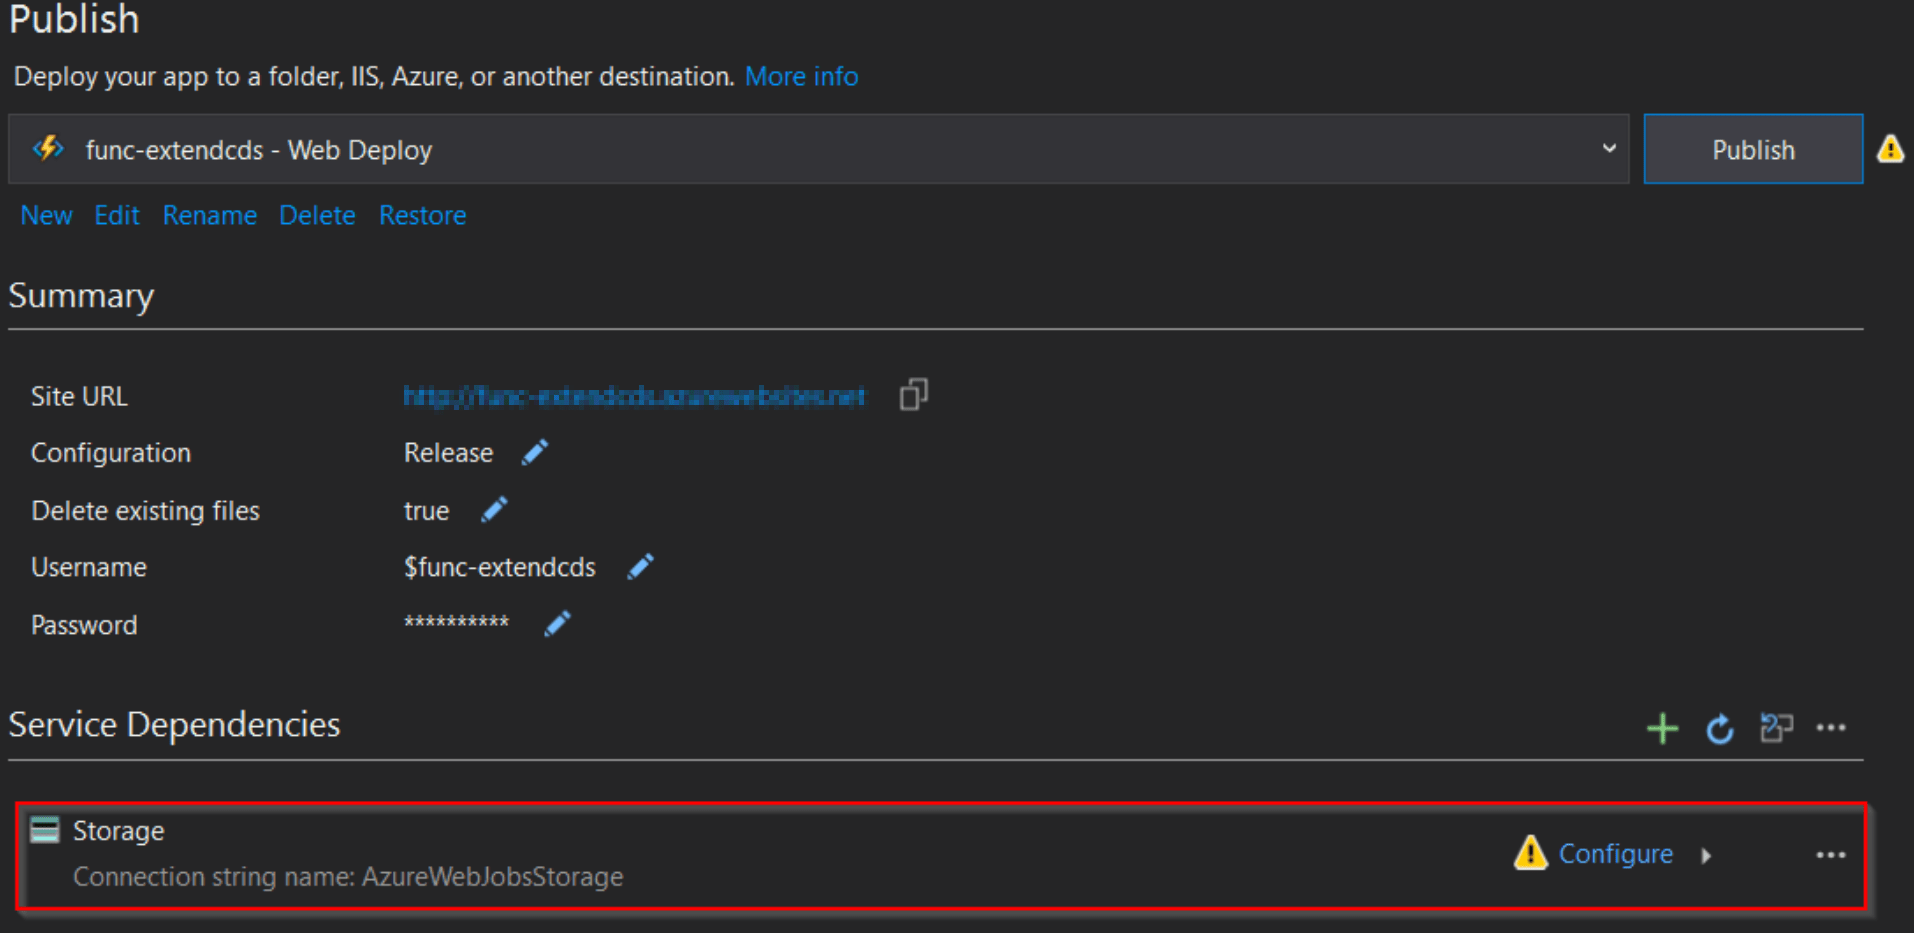 Create_Function_App_From_VisualStudio_7